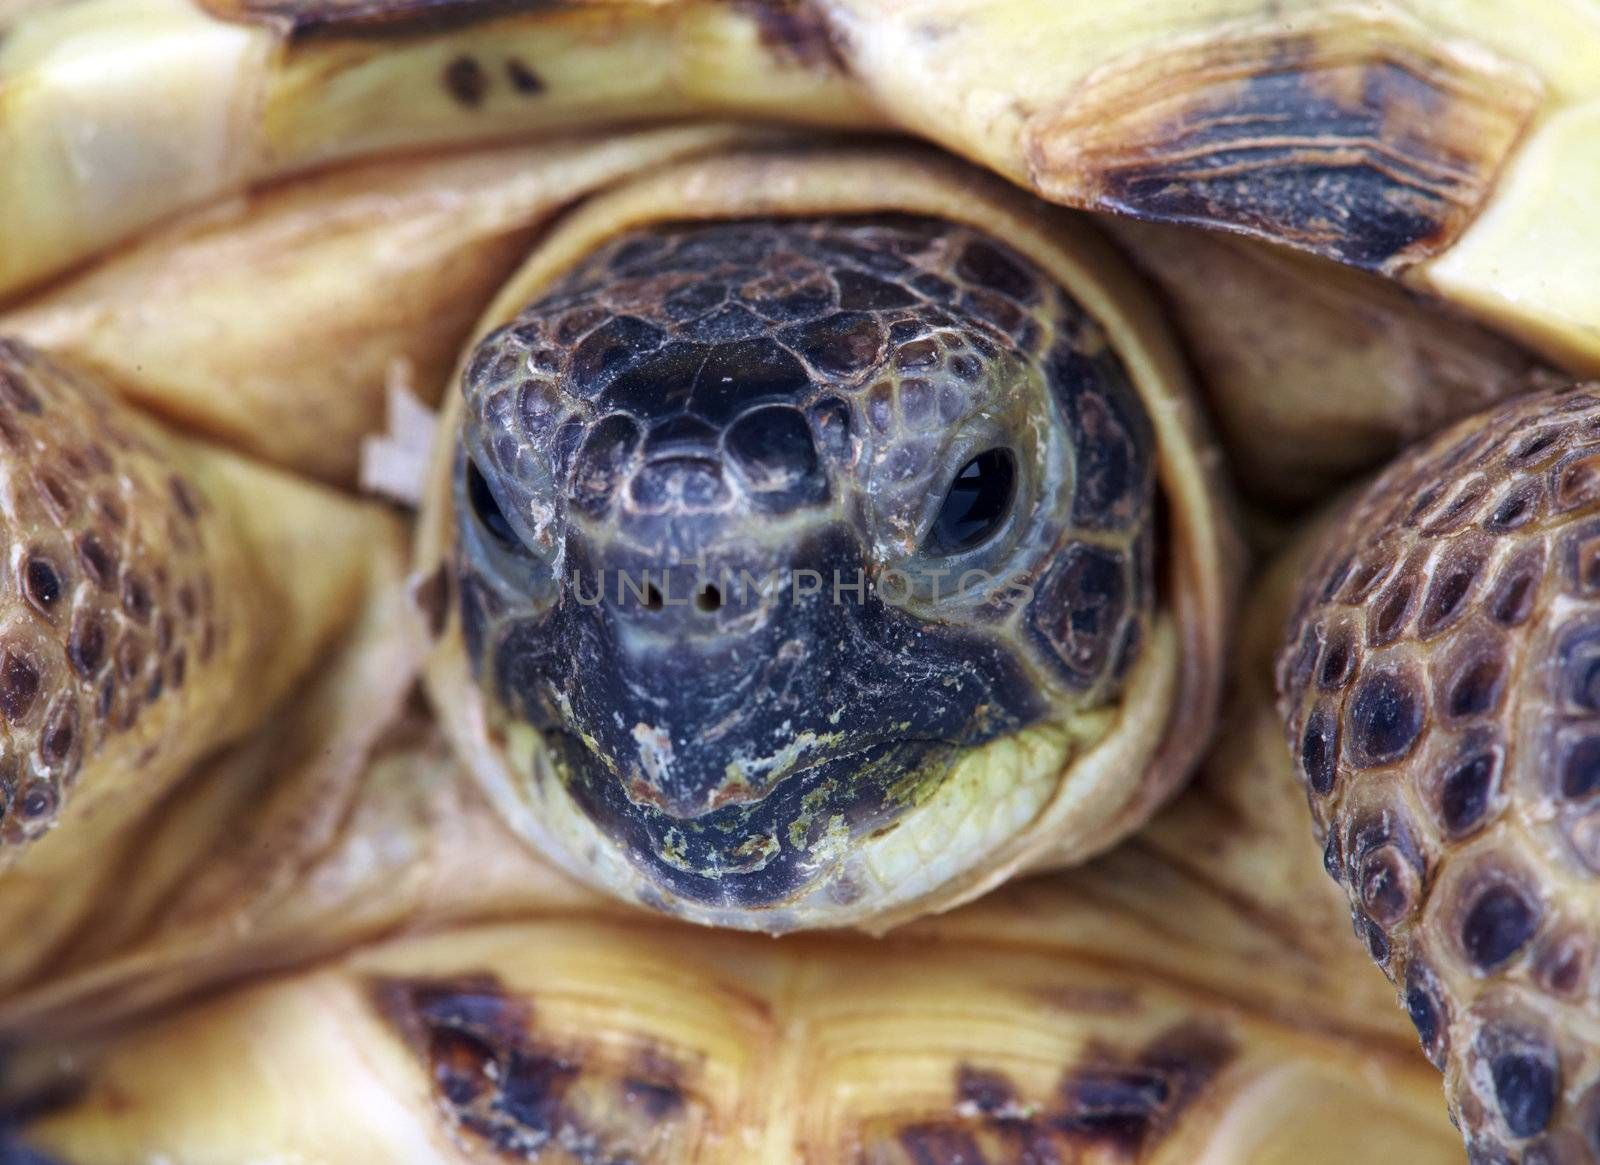 Photo of a turtle close up...